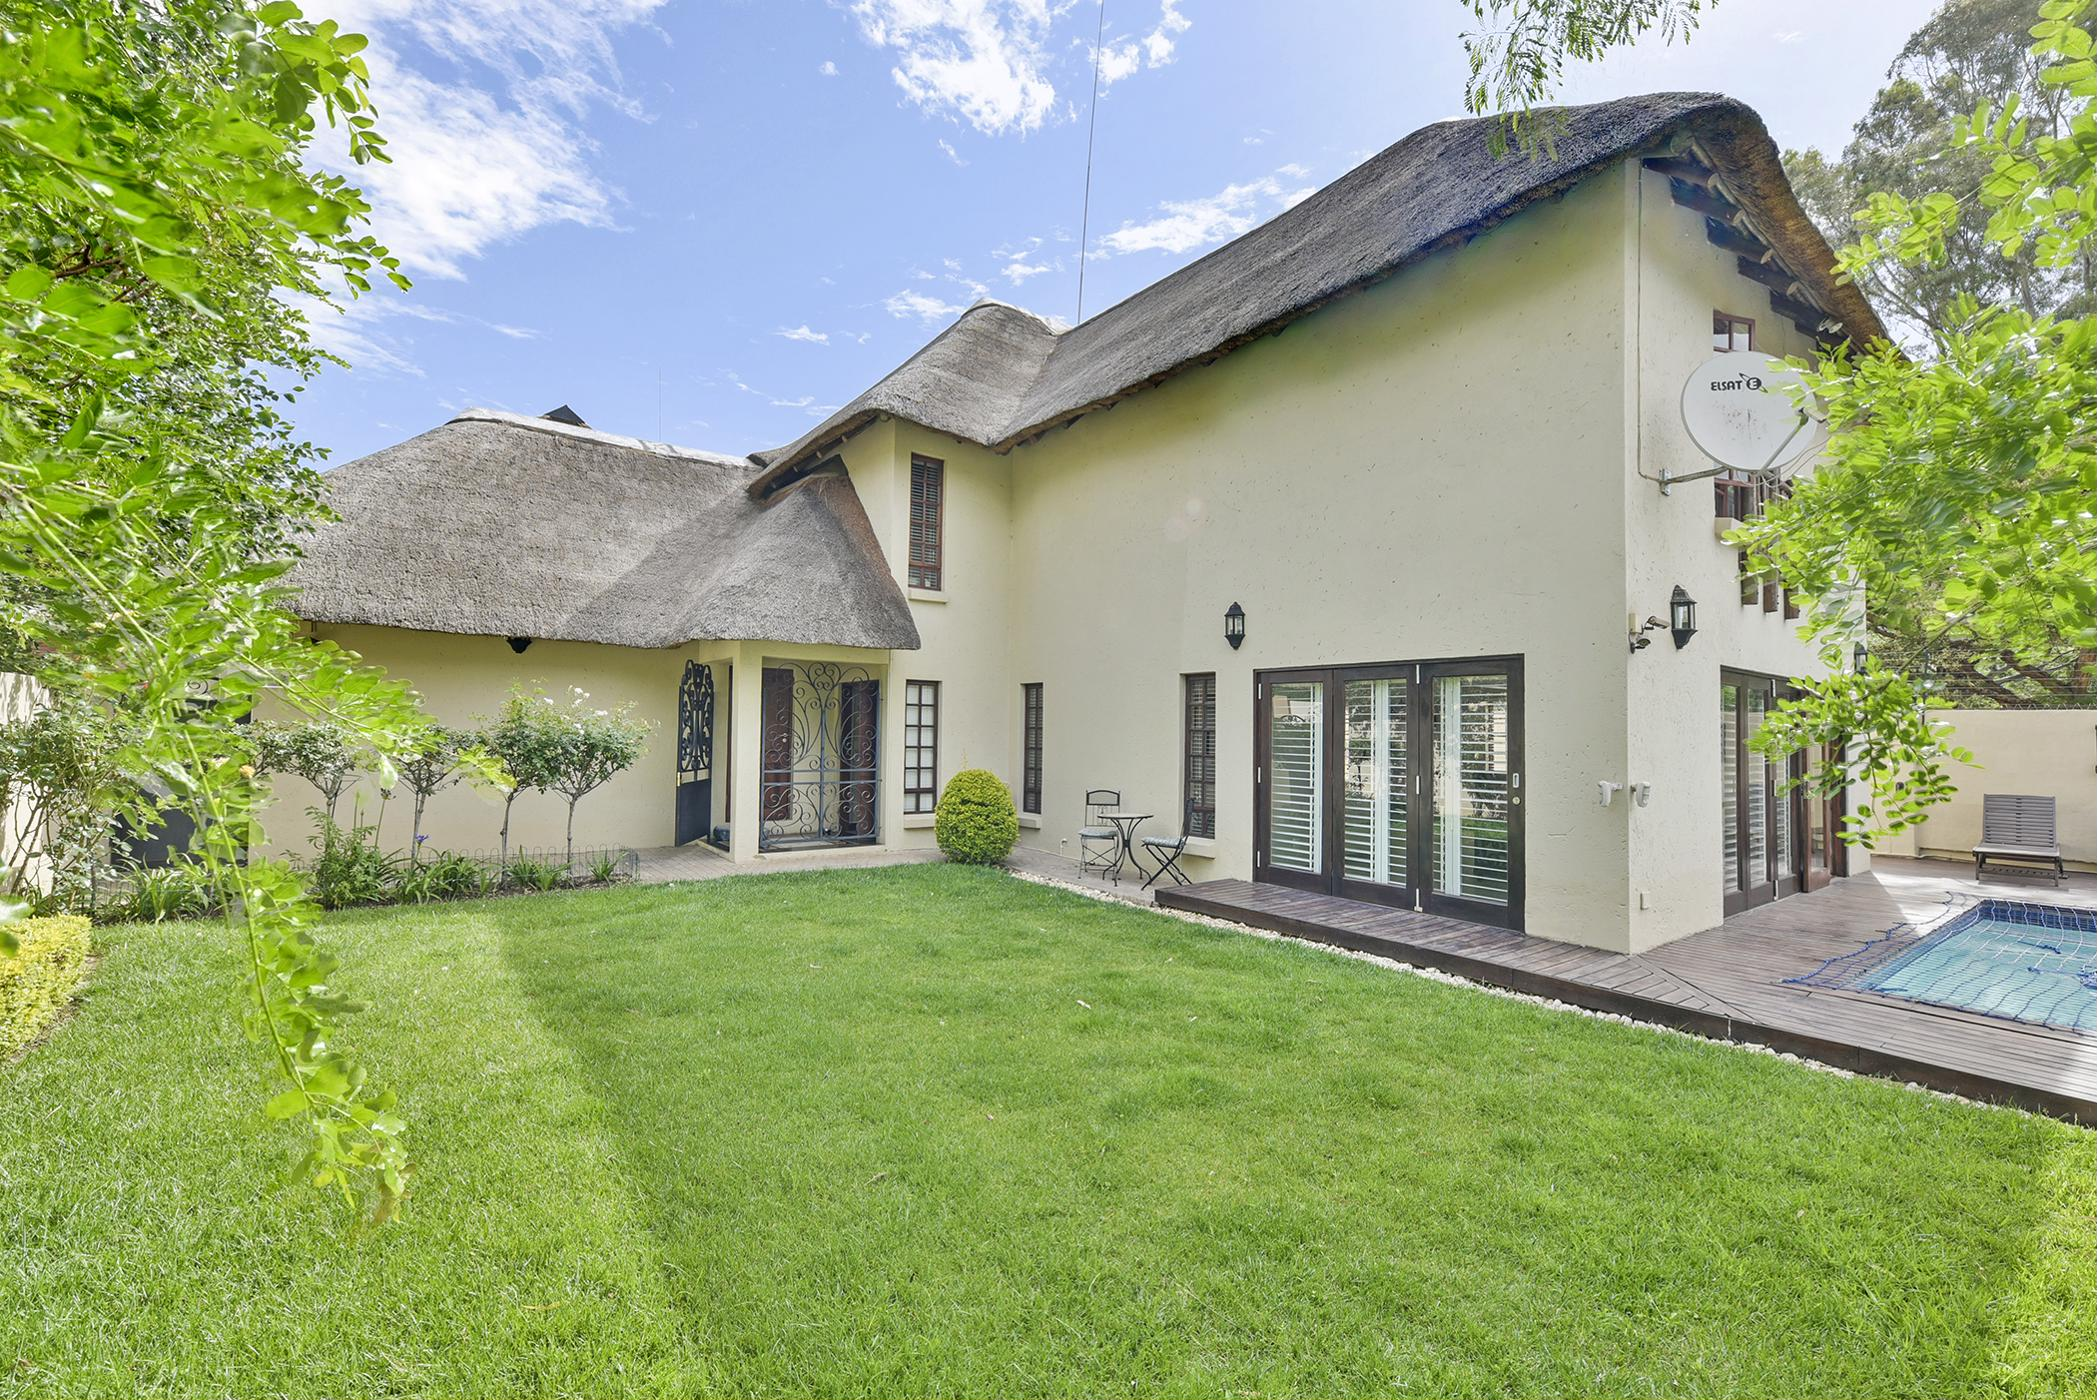 https://listing.pamgolding.co.za/images/properties/201811/1106977/H/1106977_H_9.jpg